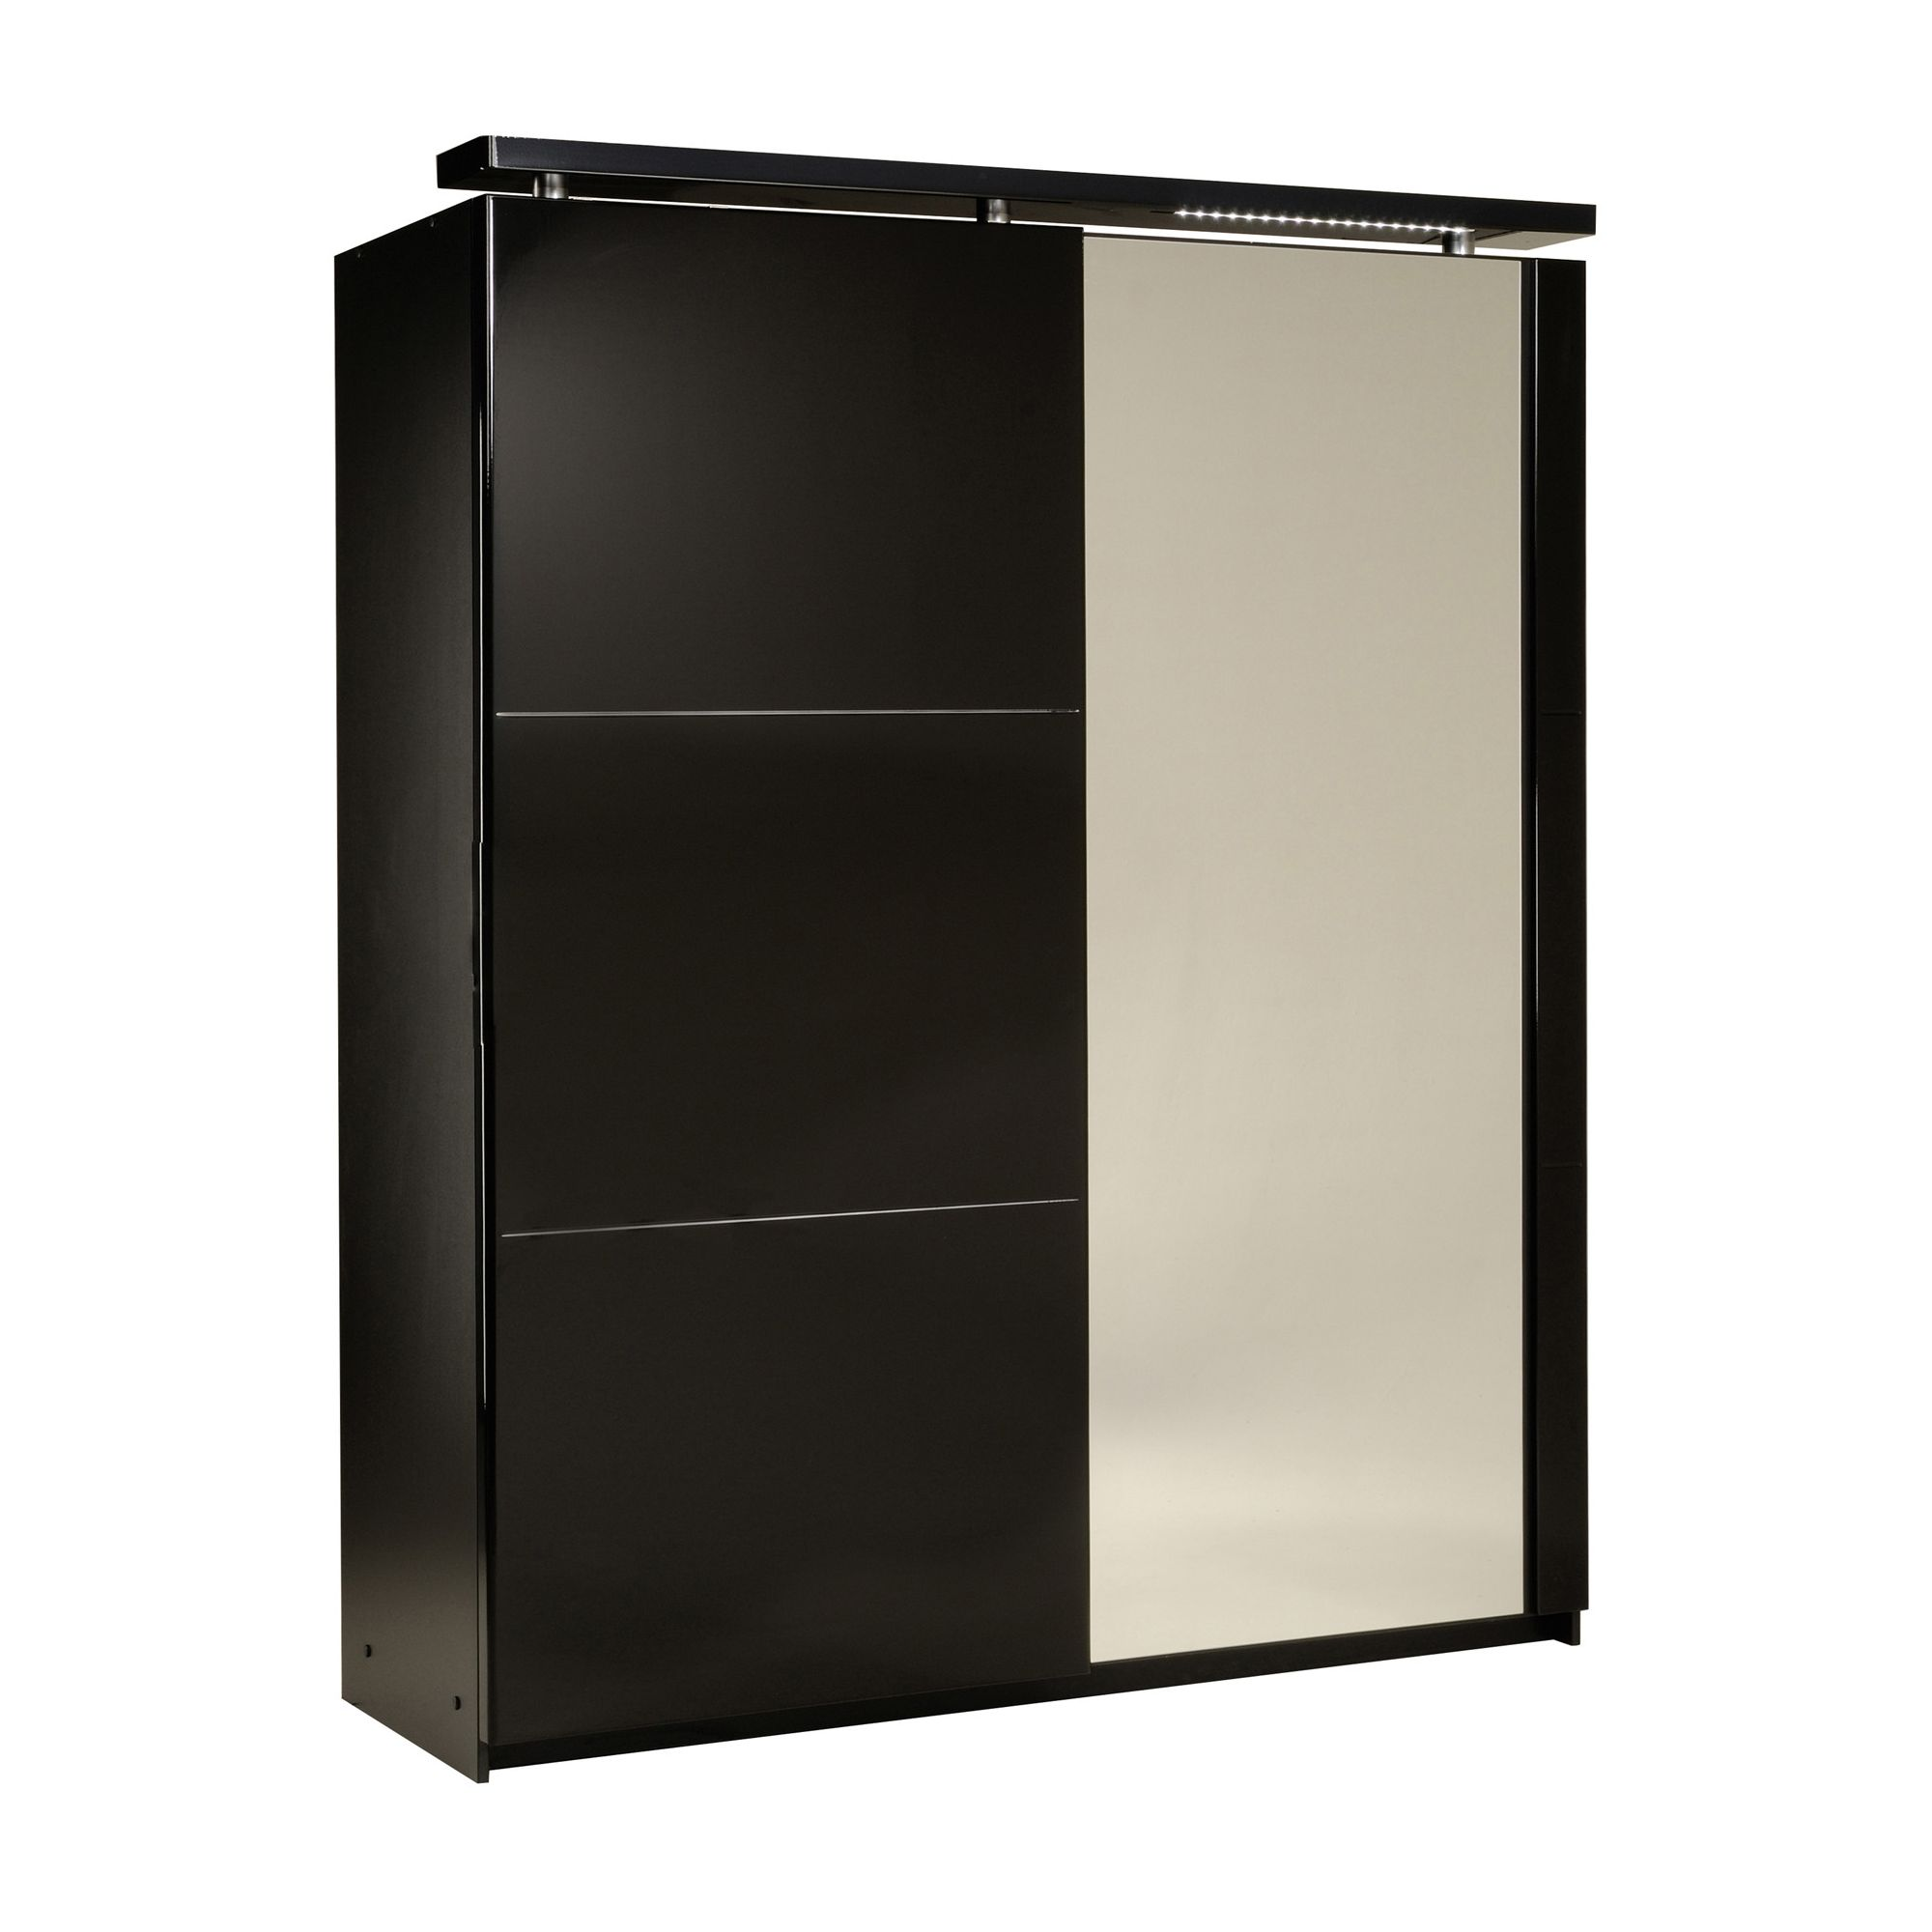 Parisot Ambyblack Sliding Door Wardrobe in Black at Tesco Direct